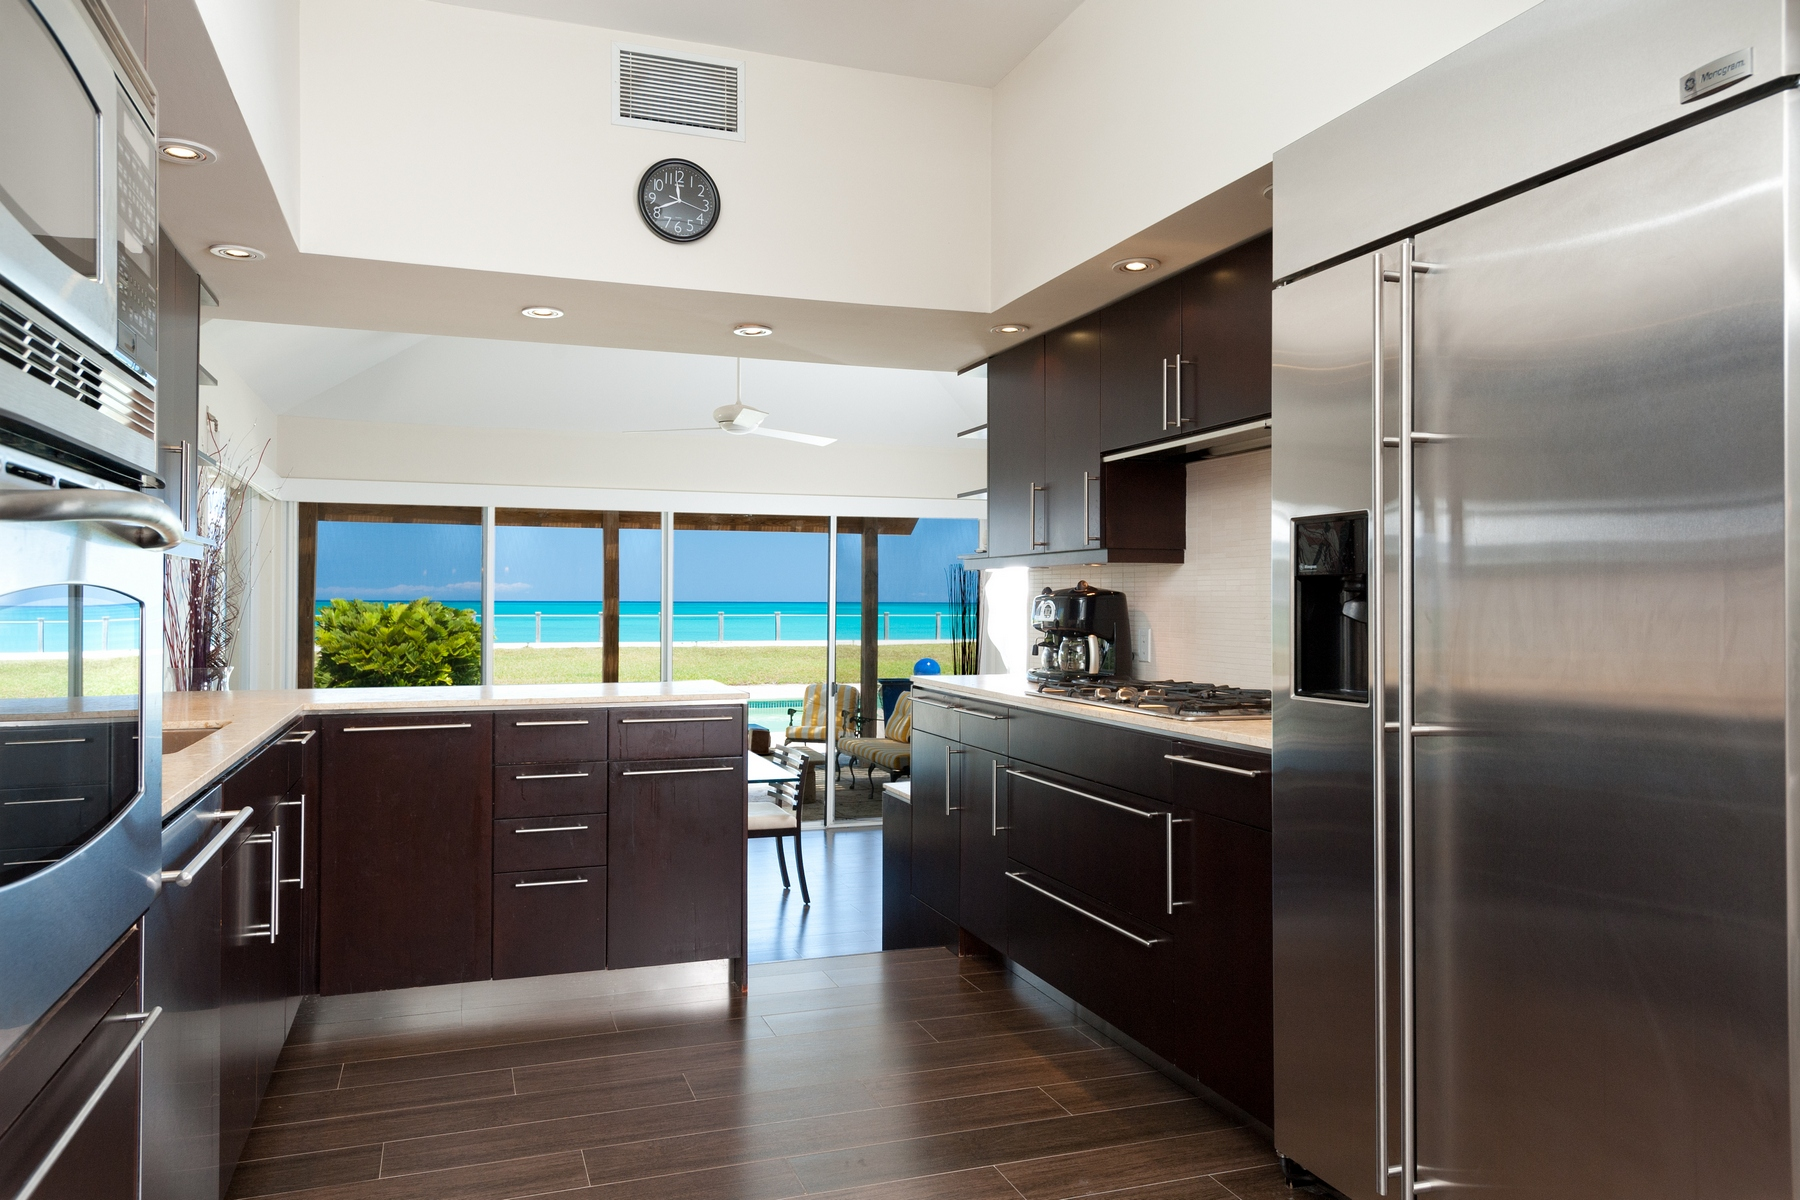 Additional photo for property listing at Conch Villa Vacation Rental 48 Tranquility Lane Grace Bay, Providenciales TC Turks And Caicos Islands